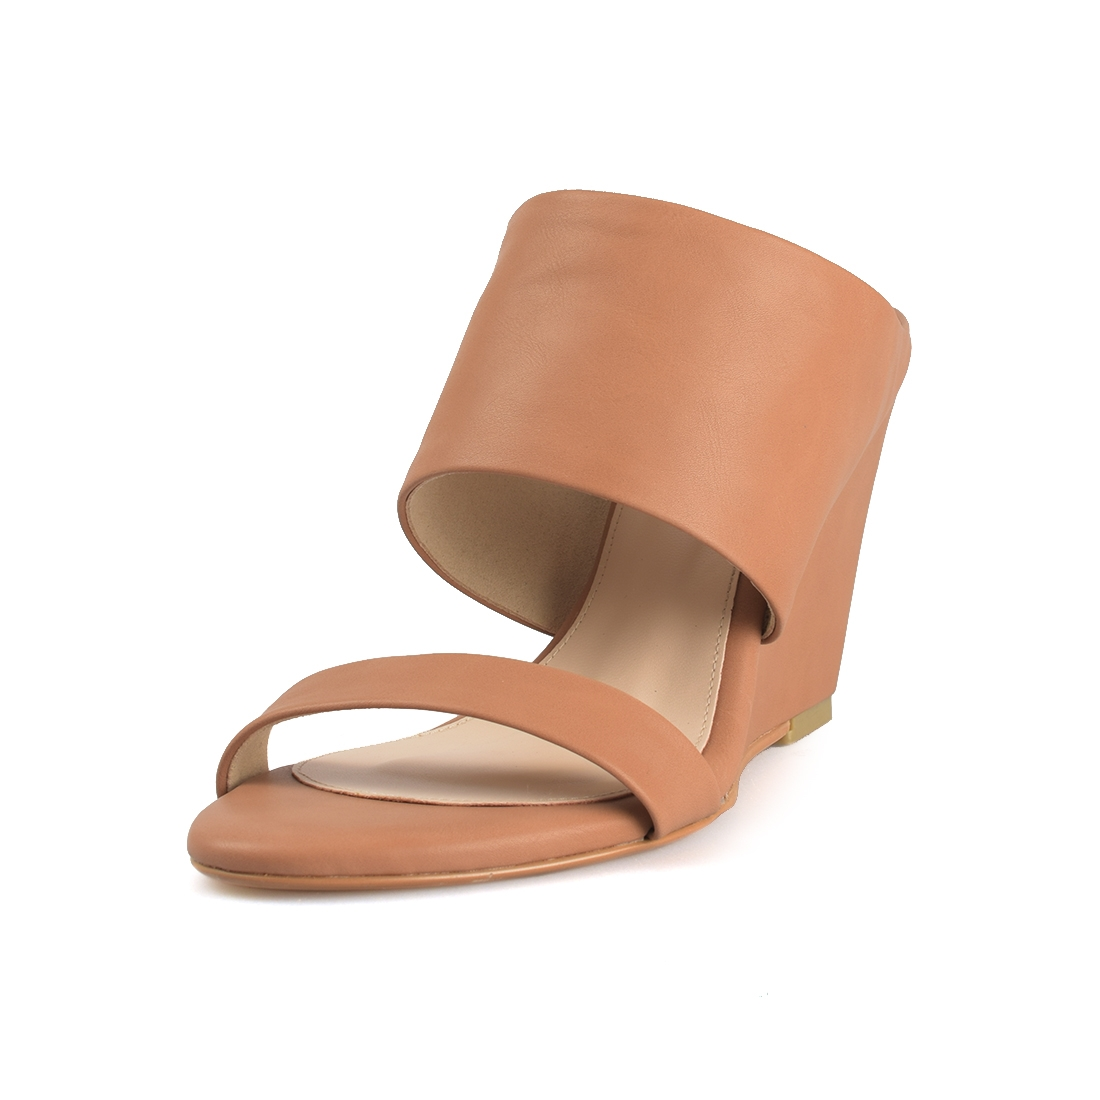 marina_brown_mule_wedge_side_view-1100x1100_0